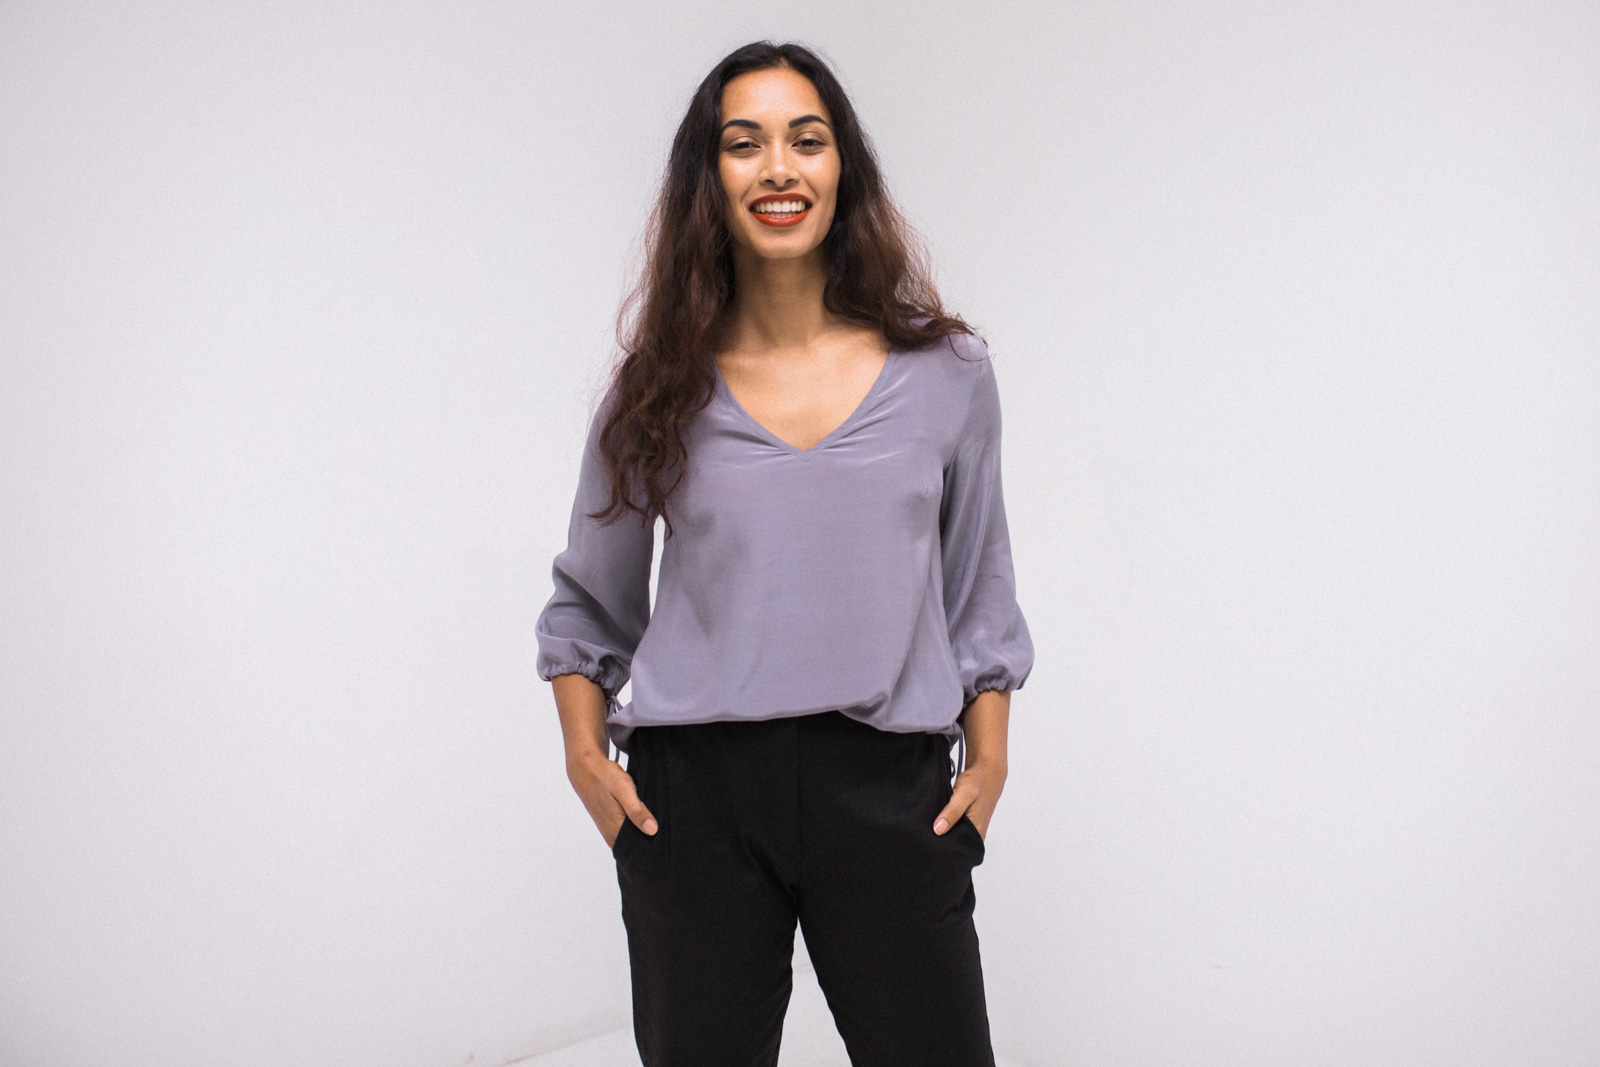 Meg Top (Colour is Ruby Red, not the pictured Lilac) - $195